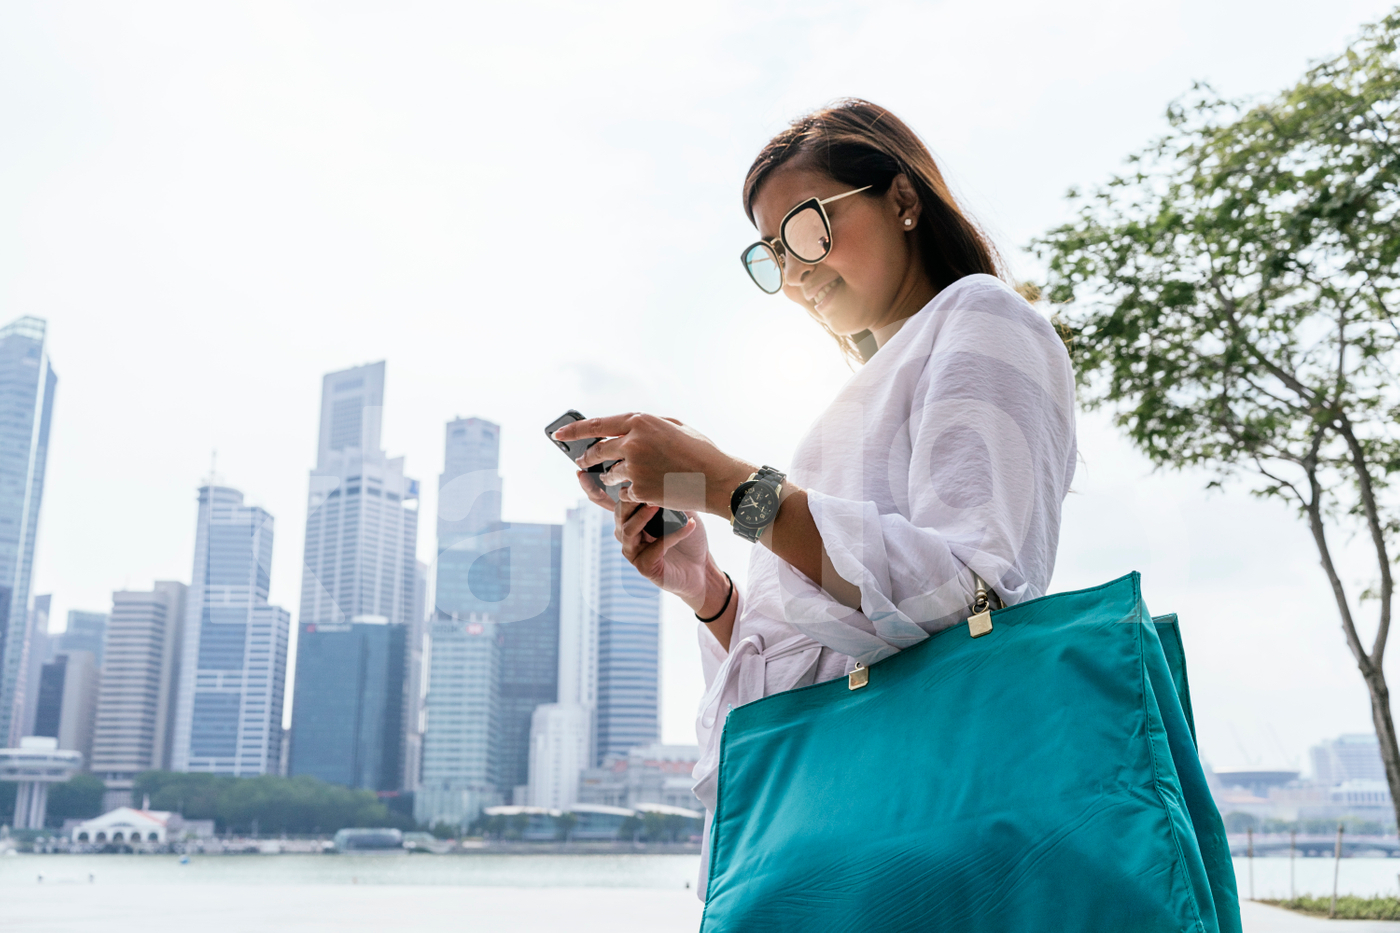 Young Asian woman  using phone, with city as a backdrop